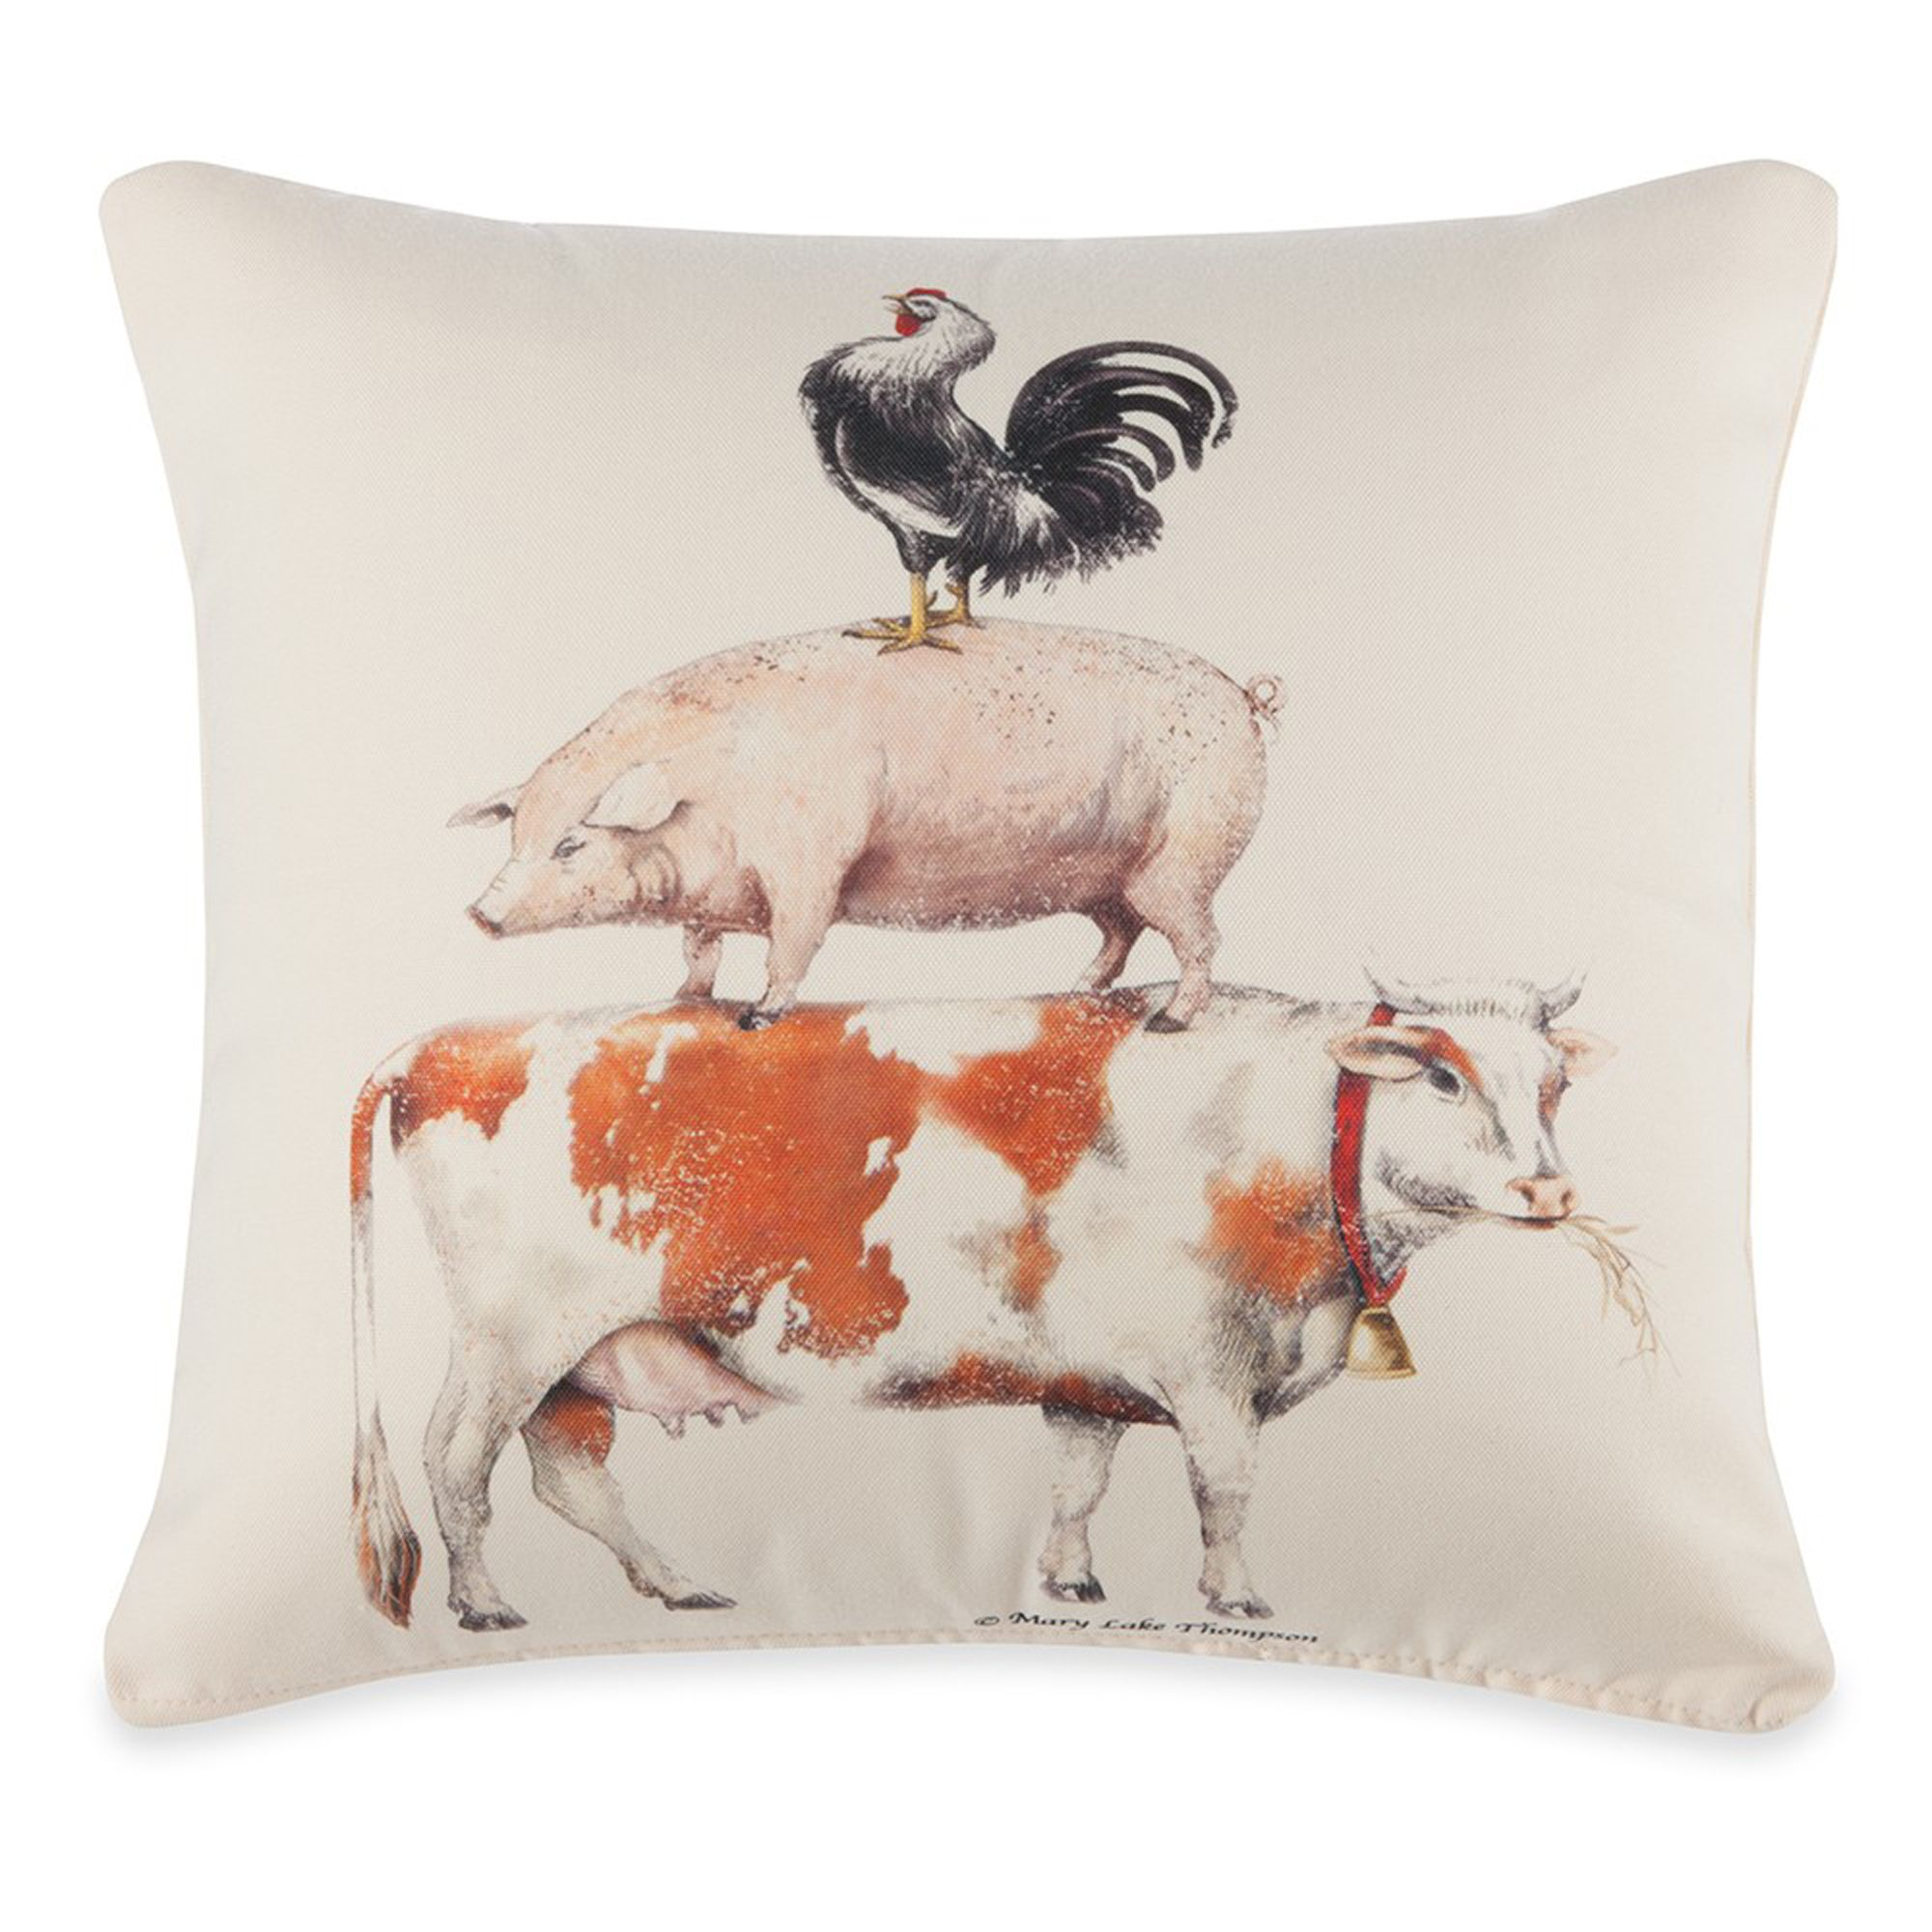 Farmhouse friends bring whimsy and charm to your country home ...